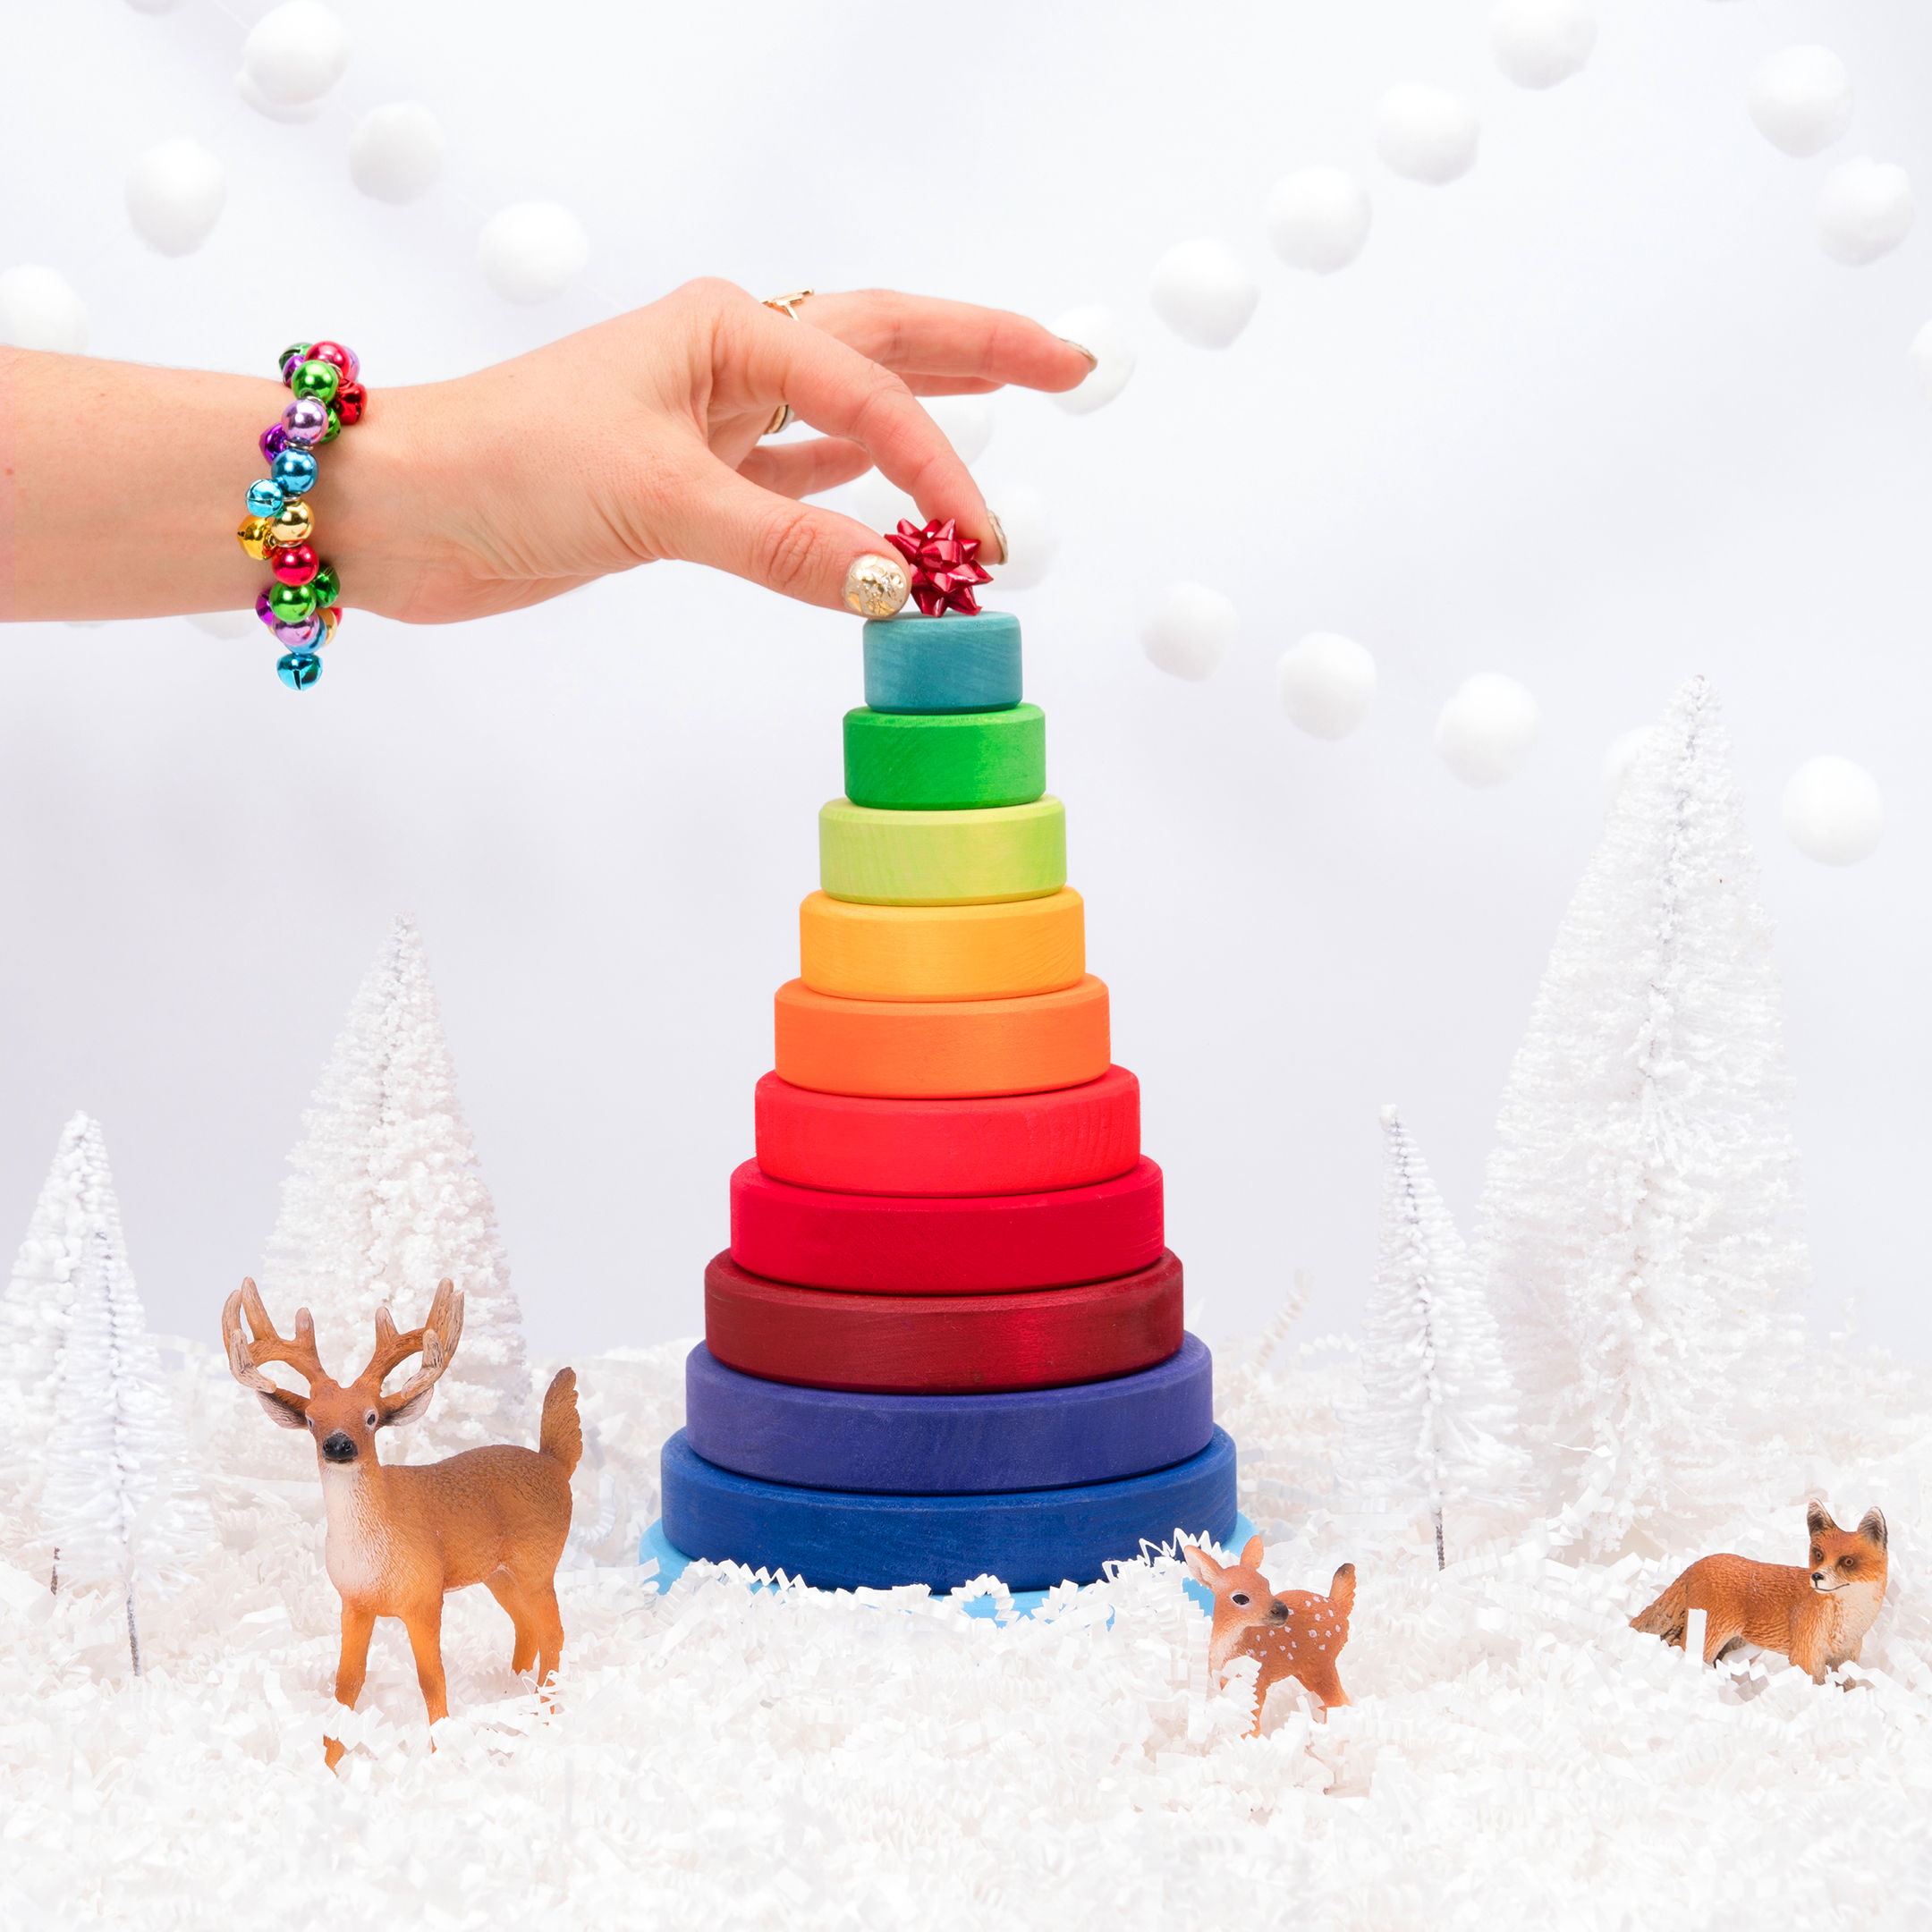 2017_BROADSWORD_XMAS_FACEON_TOYS_PYRAMID